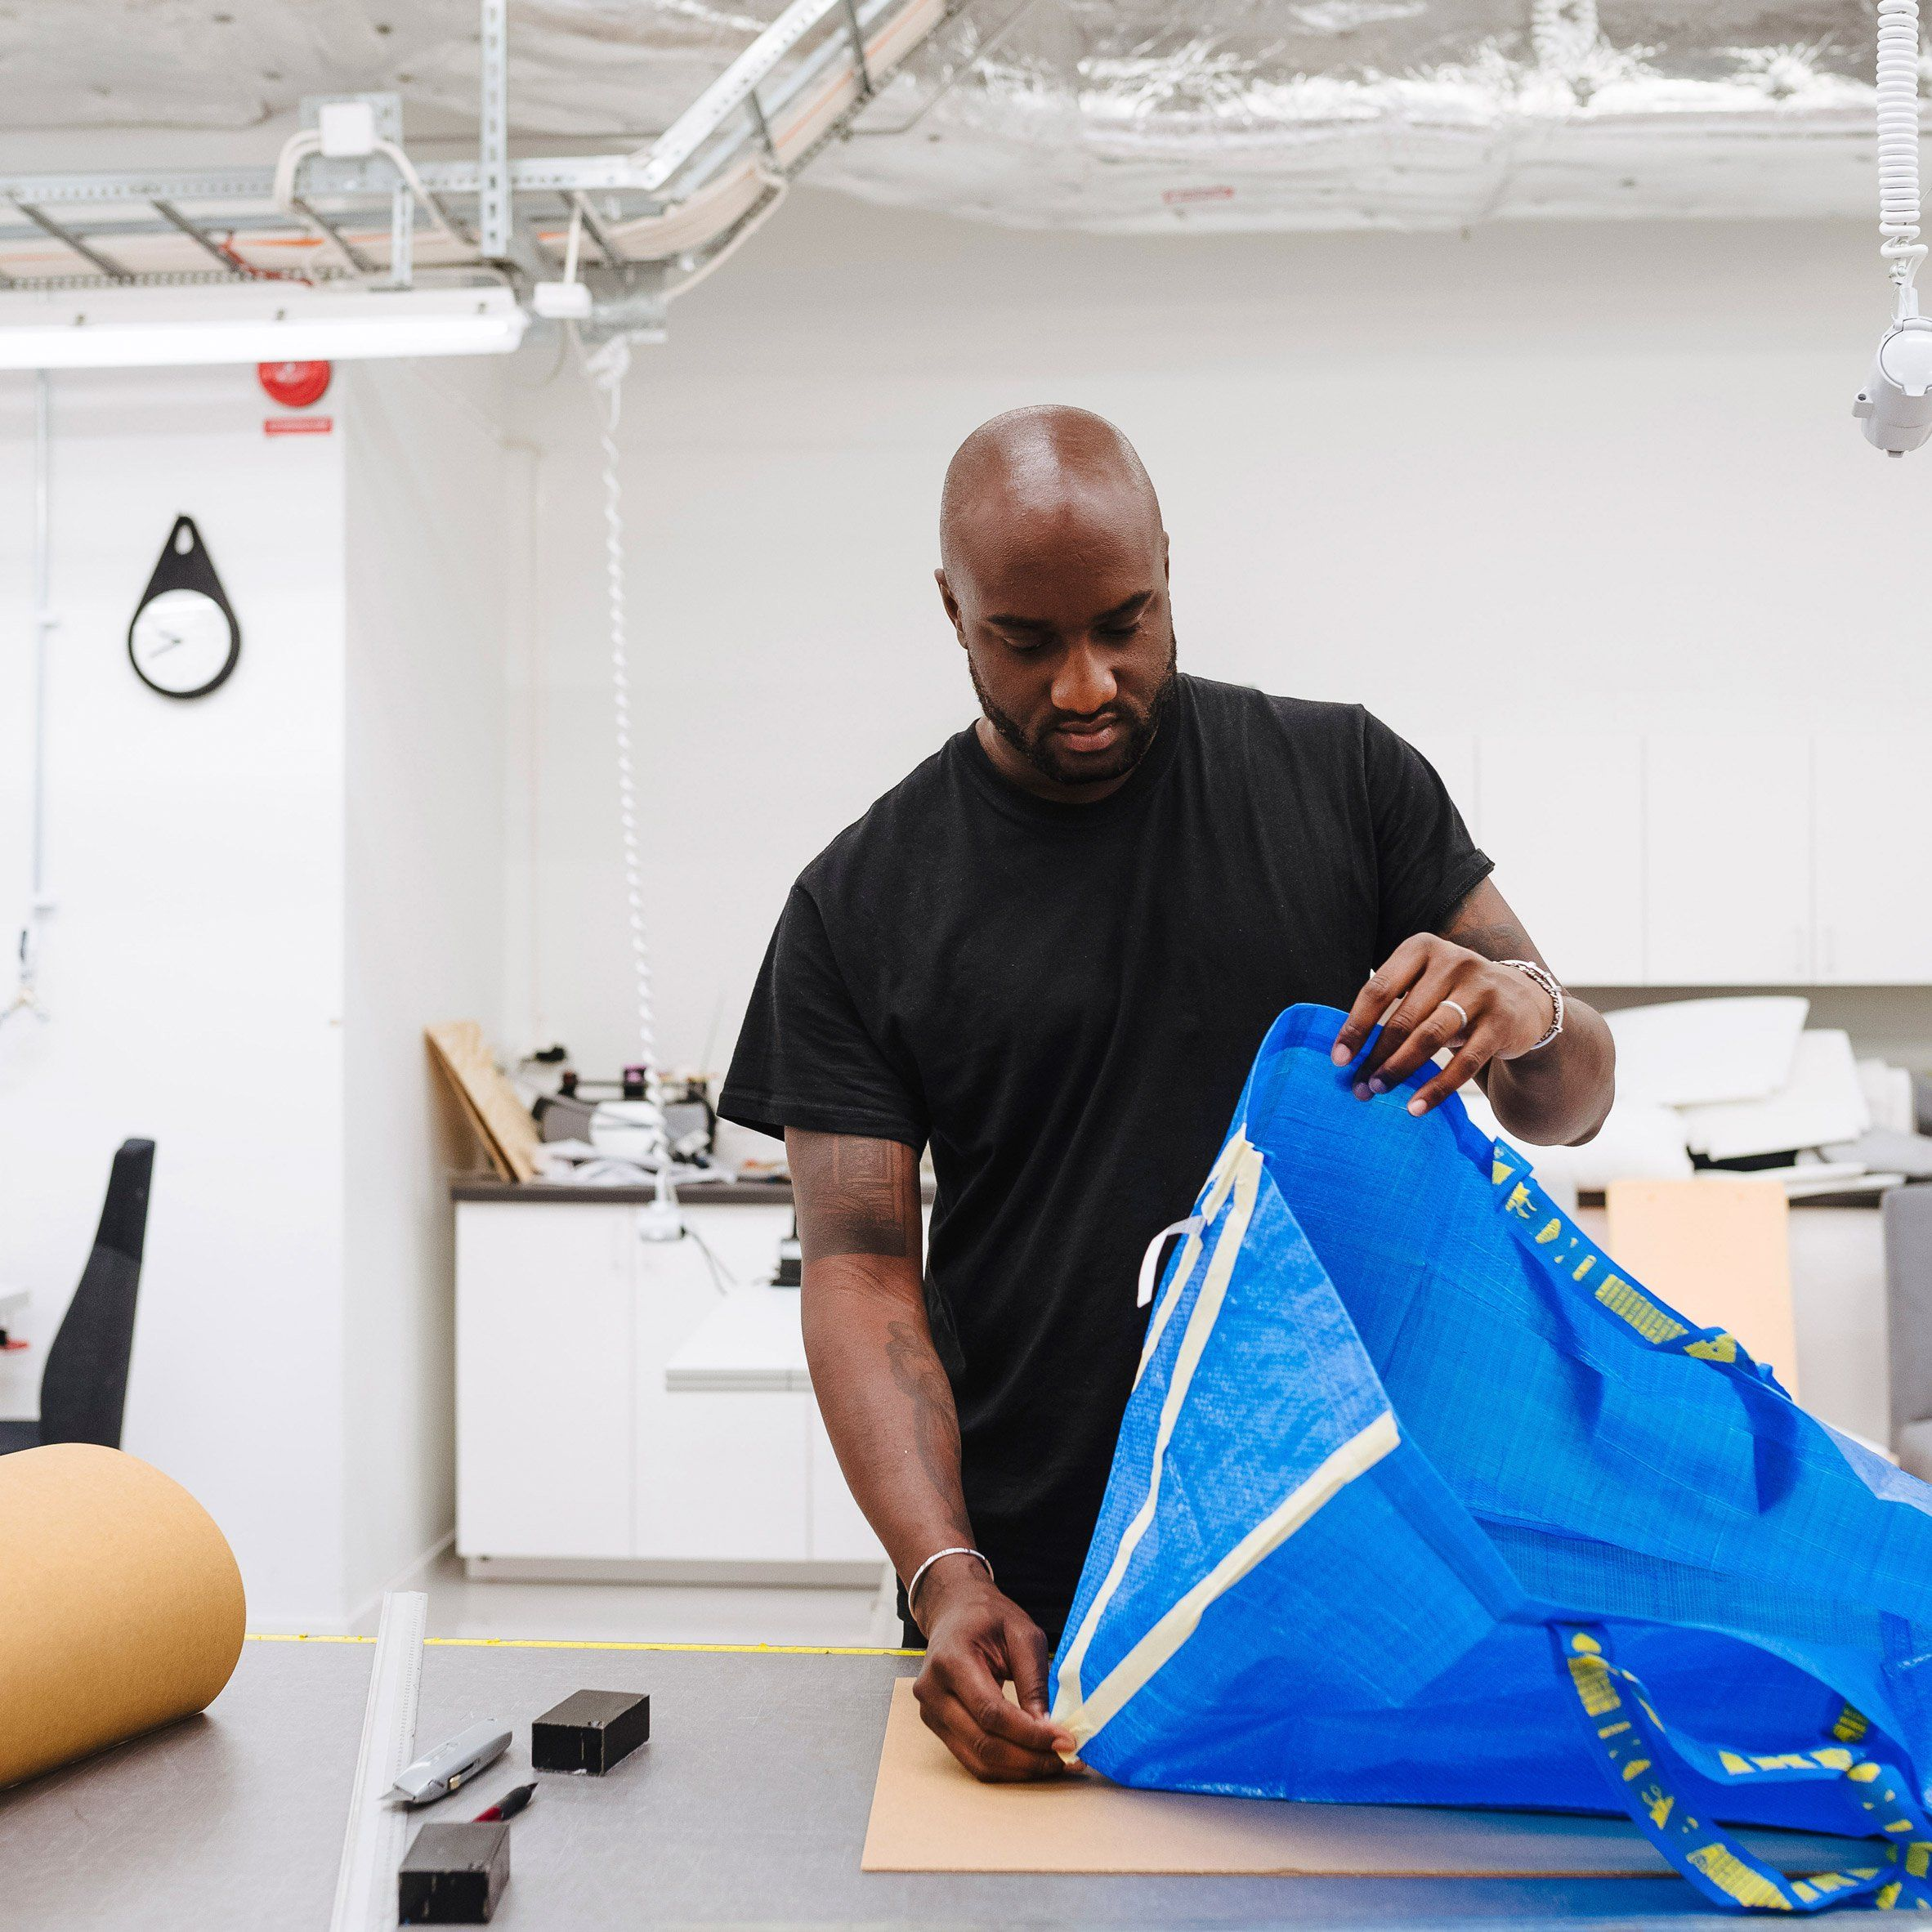 Ikea Has Announced It Will Work Alongside Fashion Designer Virgil Abloh To Produce A Collection Aimed At Millennials M Off White Virgil Abloh Virgil Abloh Fashion